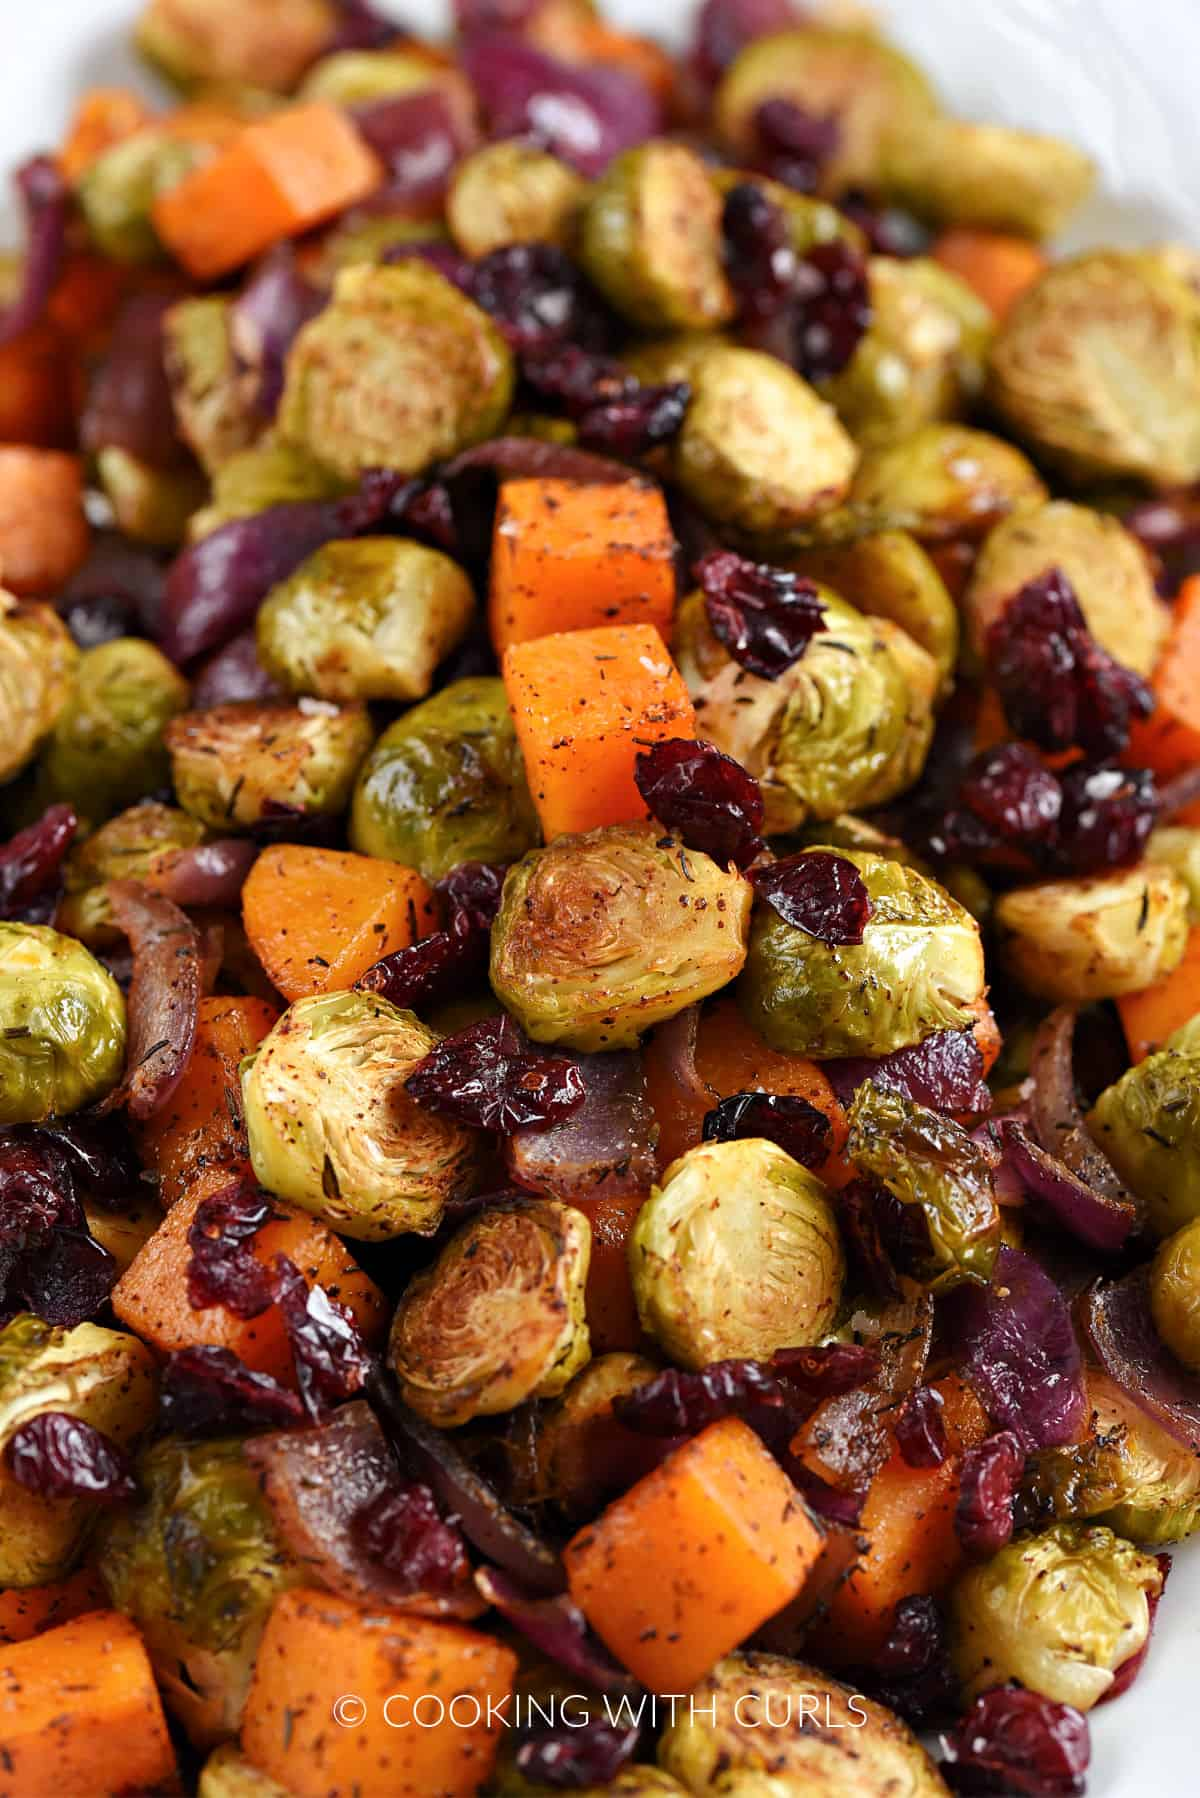 Very close-up image of Oven Roasted Brussels Sprouts and Squash with Dried Cranberries.